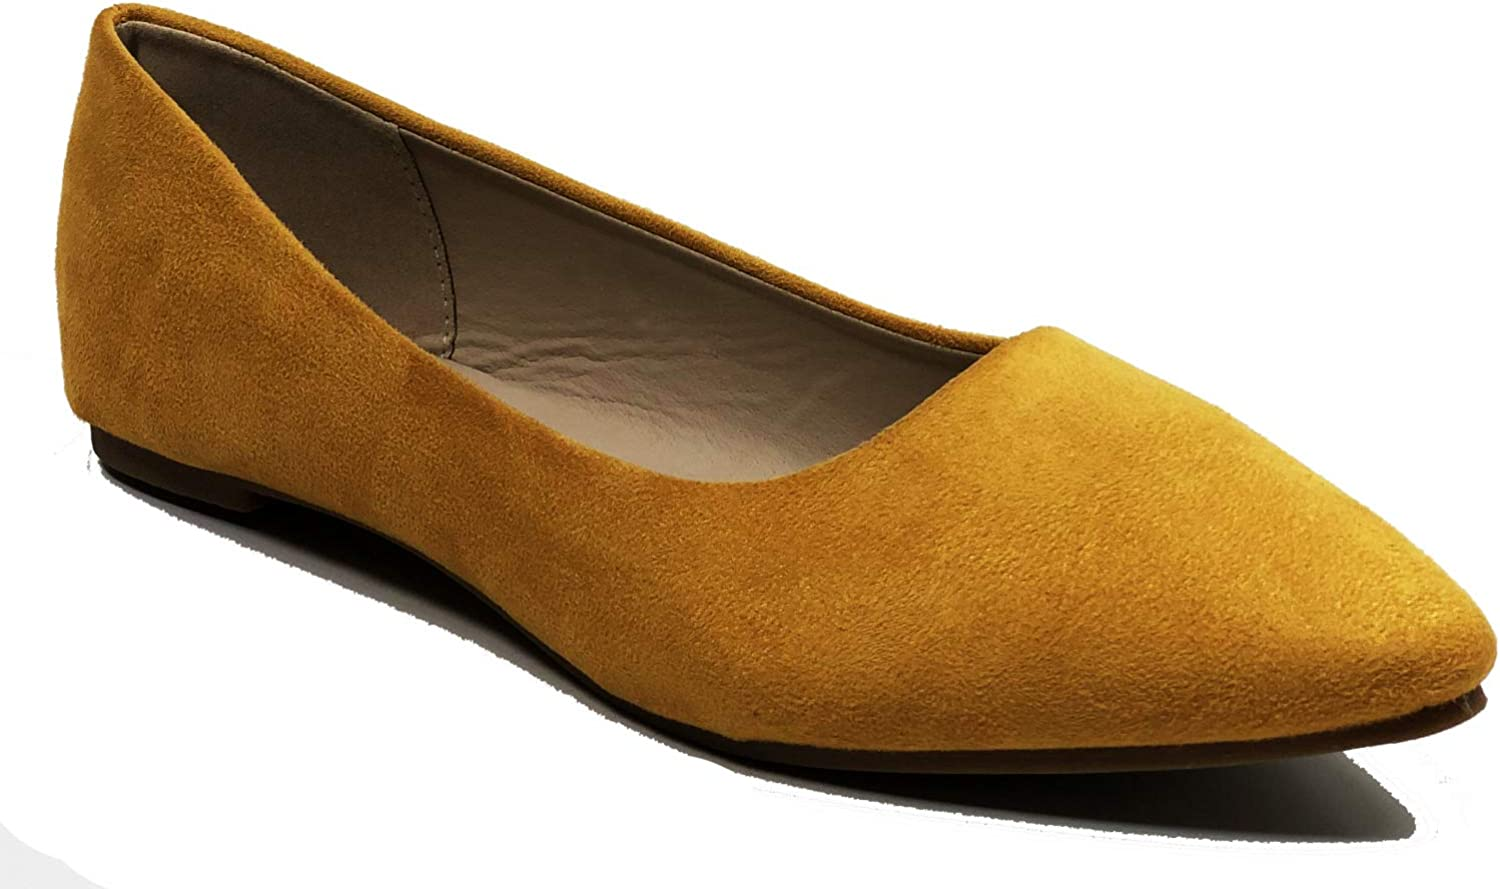 CuteFlats Casual Flats with Large Size from 2-15 US Available Comfortable Women Flats